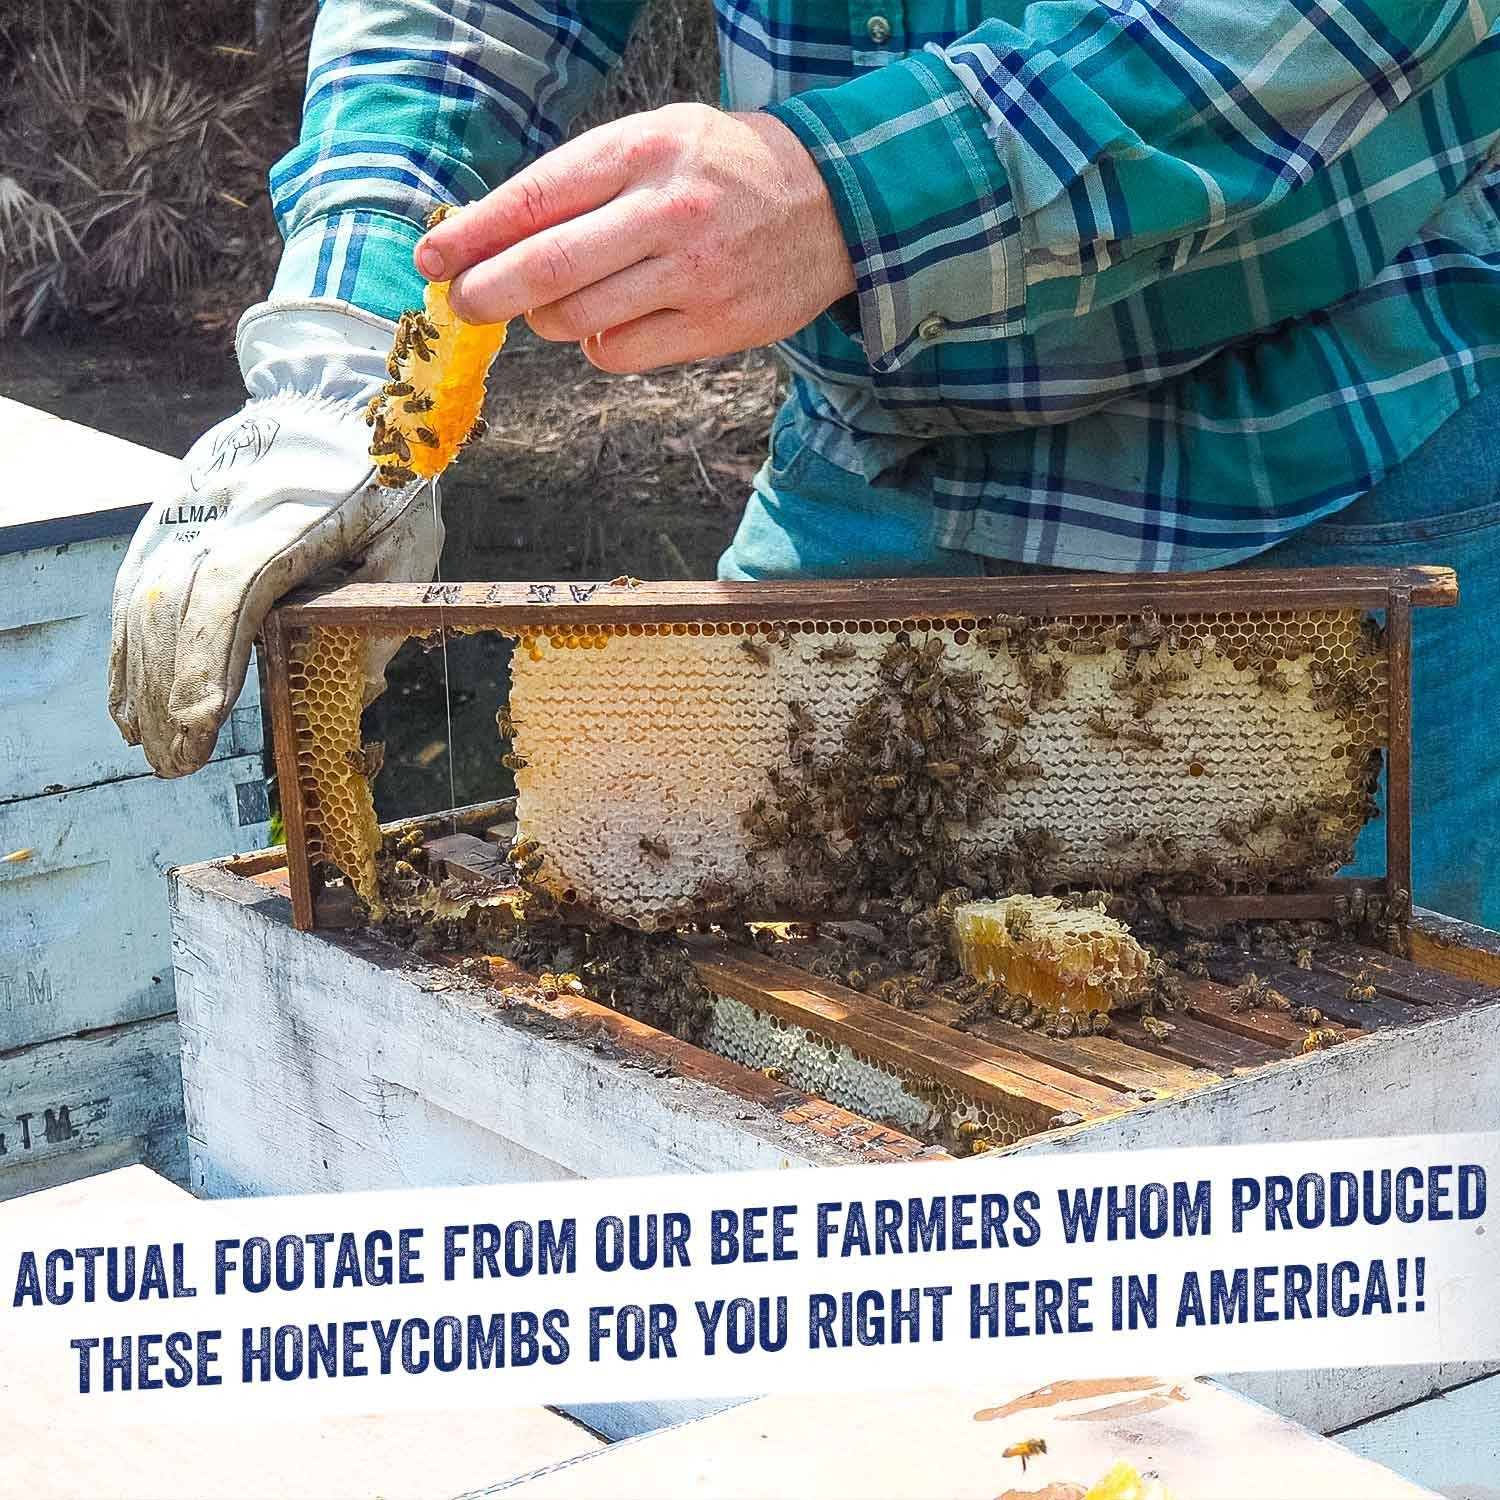 Image of the beekeeper holding with one hand a piece of honeycomb with bees on it, and with the other hand holding a frame of honeycomb full of bees, over a hive.